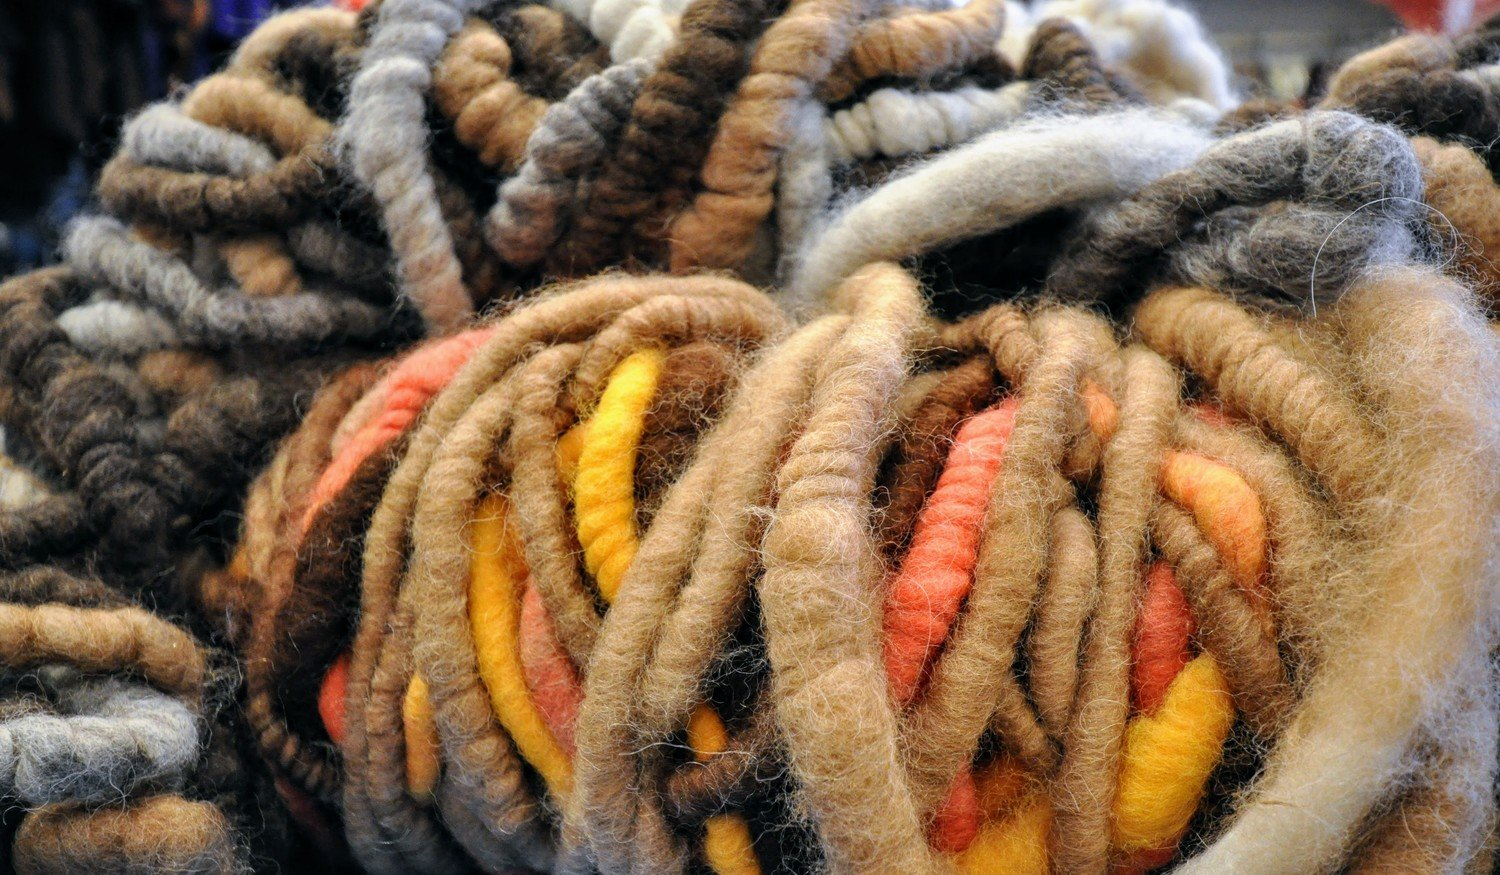 Breezy Hill Alpaca Rug Yarn - Variegated, Light Multi - small bale